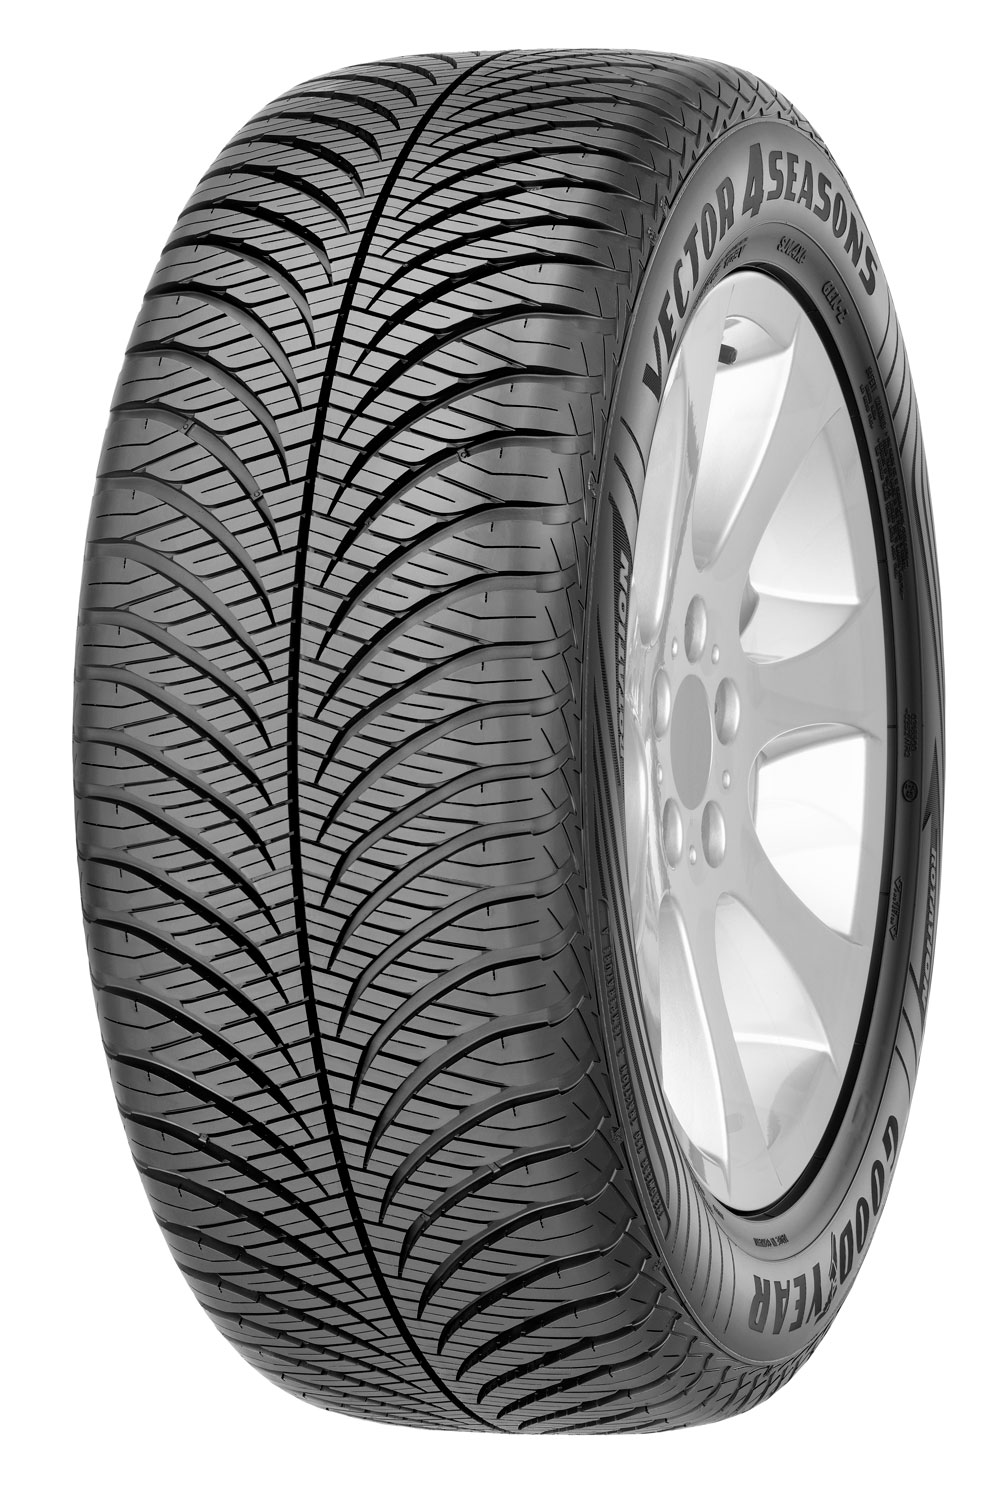 185/70 R14 VECTOR 4SEASON G2 88T M&S